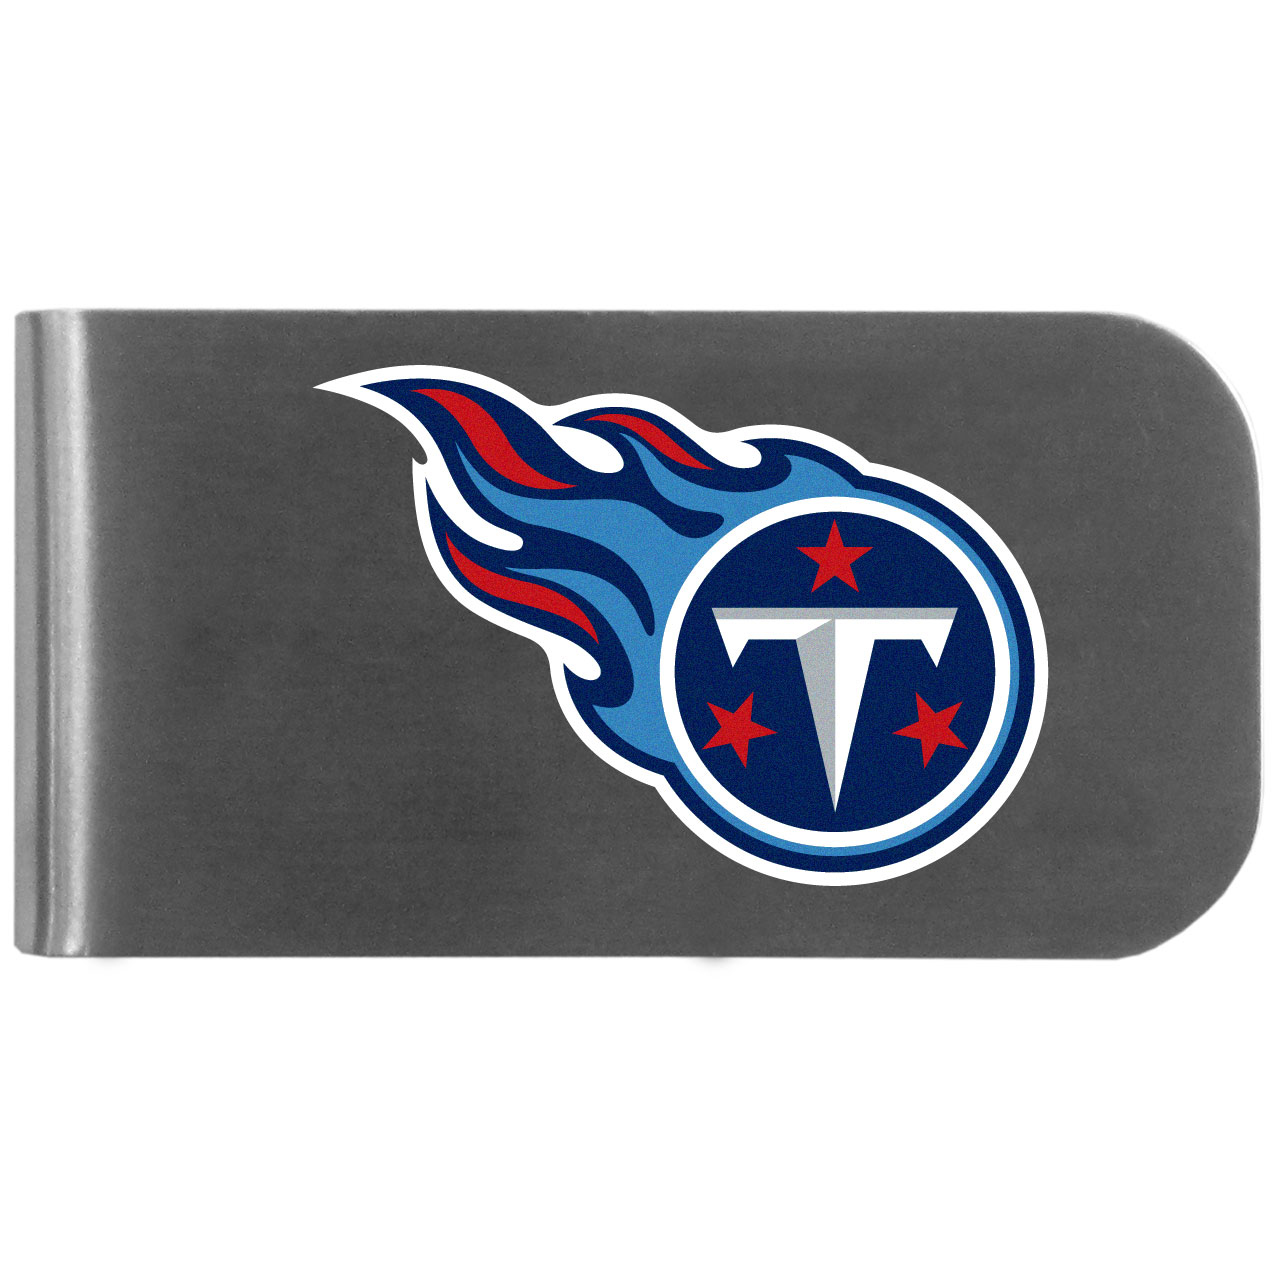 Tennessee Titans Logo Bottle Opener Money Clip - This unique money clip features a classic, brushed-metal finish with a handy bottle opener feature on the back. The clip has the Tennessee Titans logo expertly printed on the front of the clip.